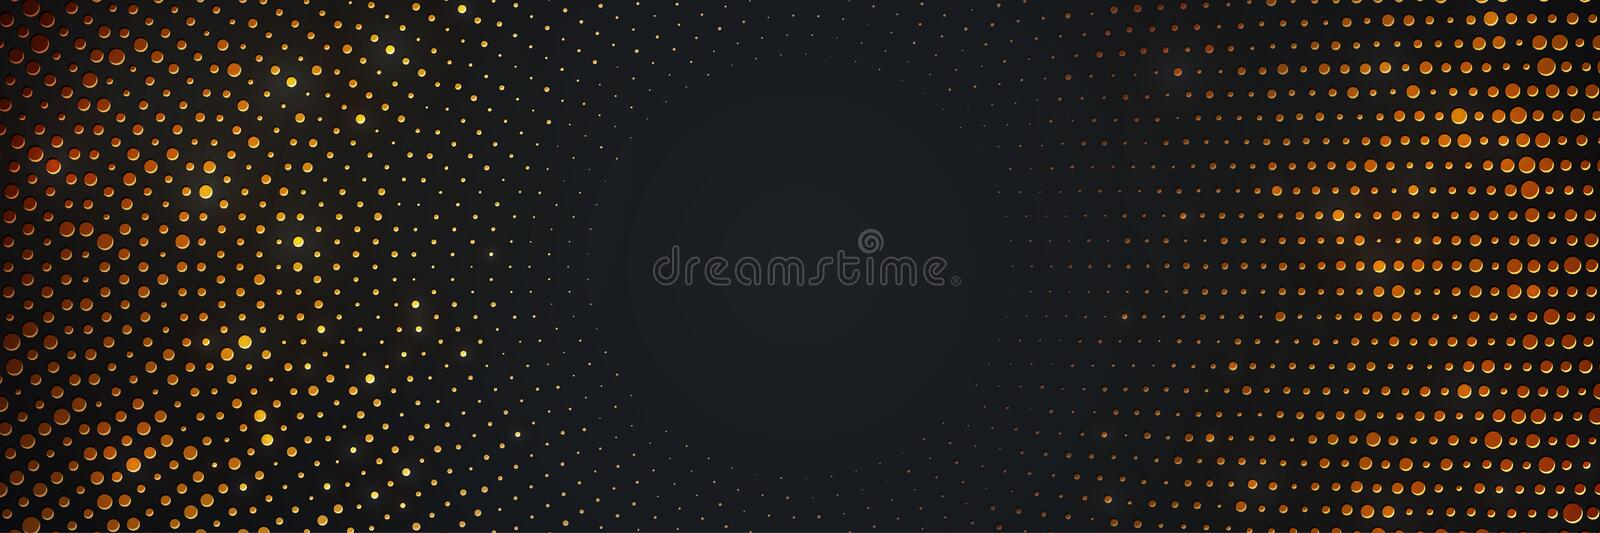 Abstract black background with a combination glowing golden dots. Circle black textured background with shining golden halftone vector illustration